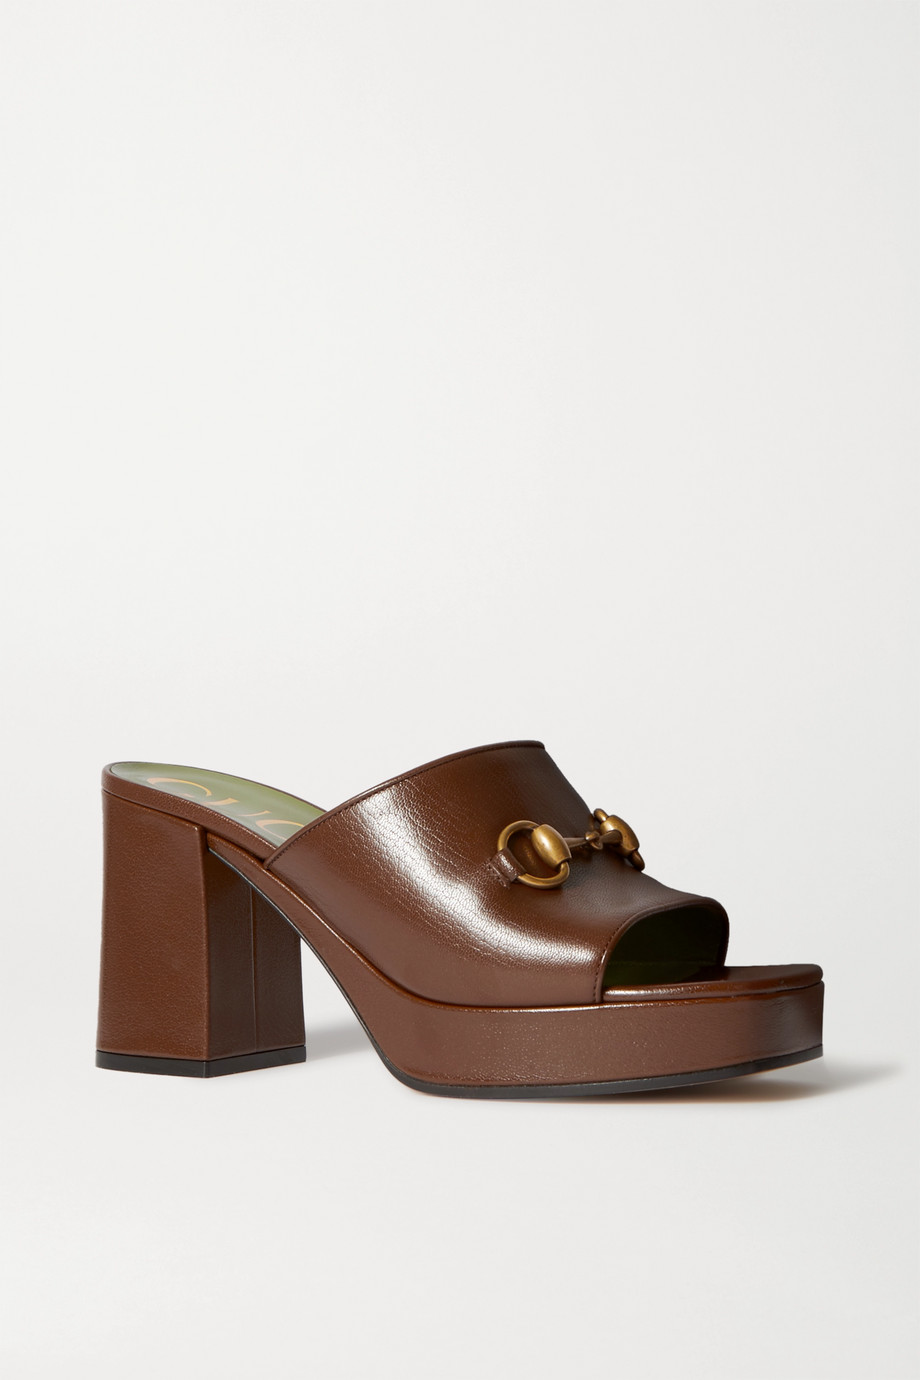 Gucci Houdan horsebit-detailed leather platform mules